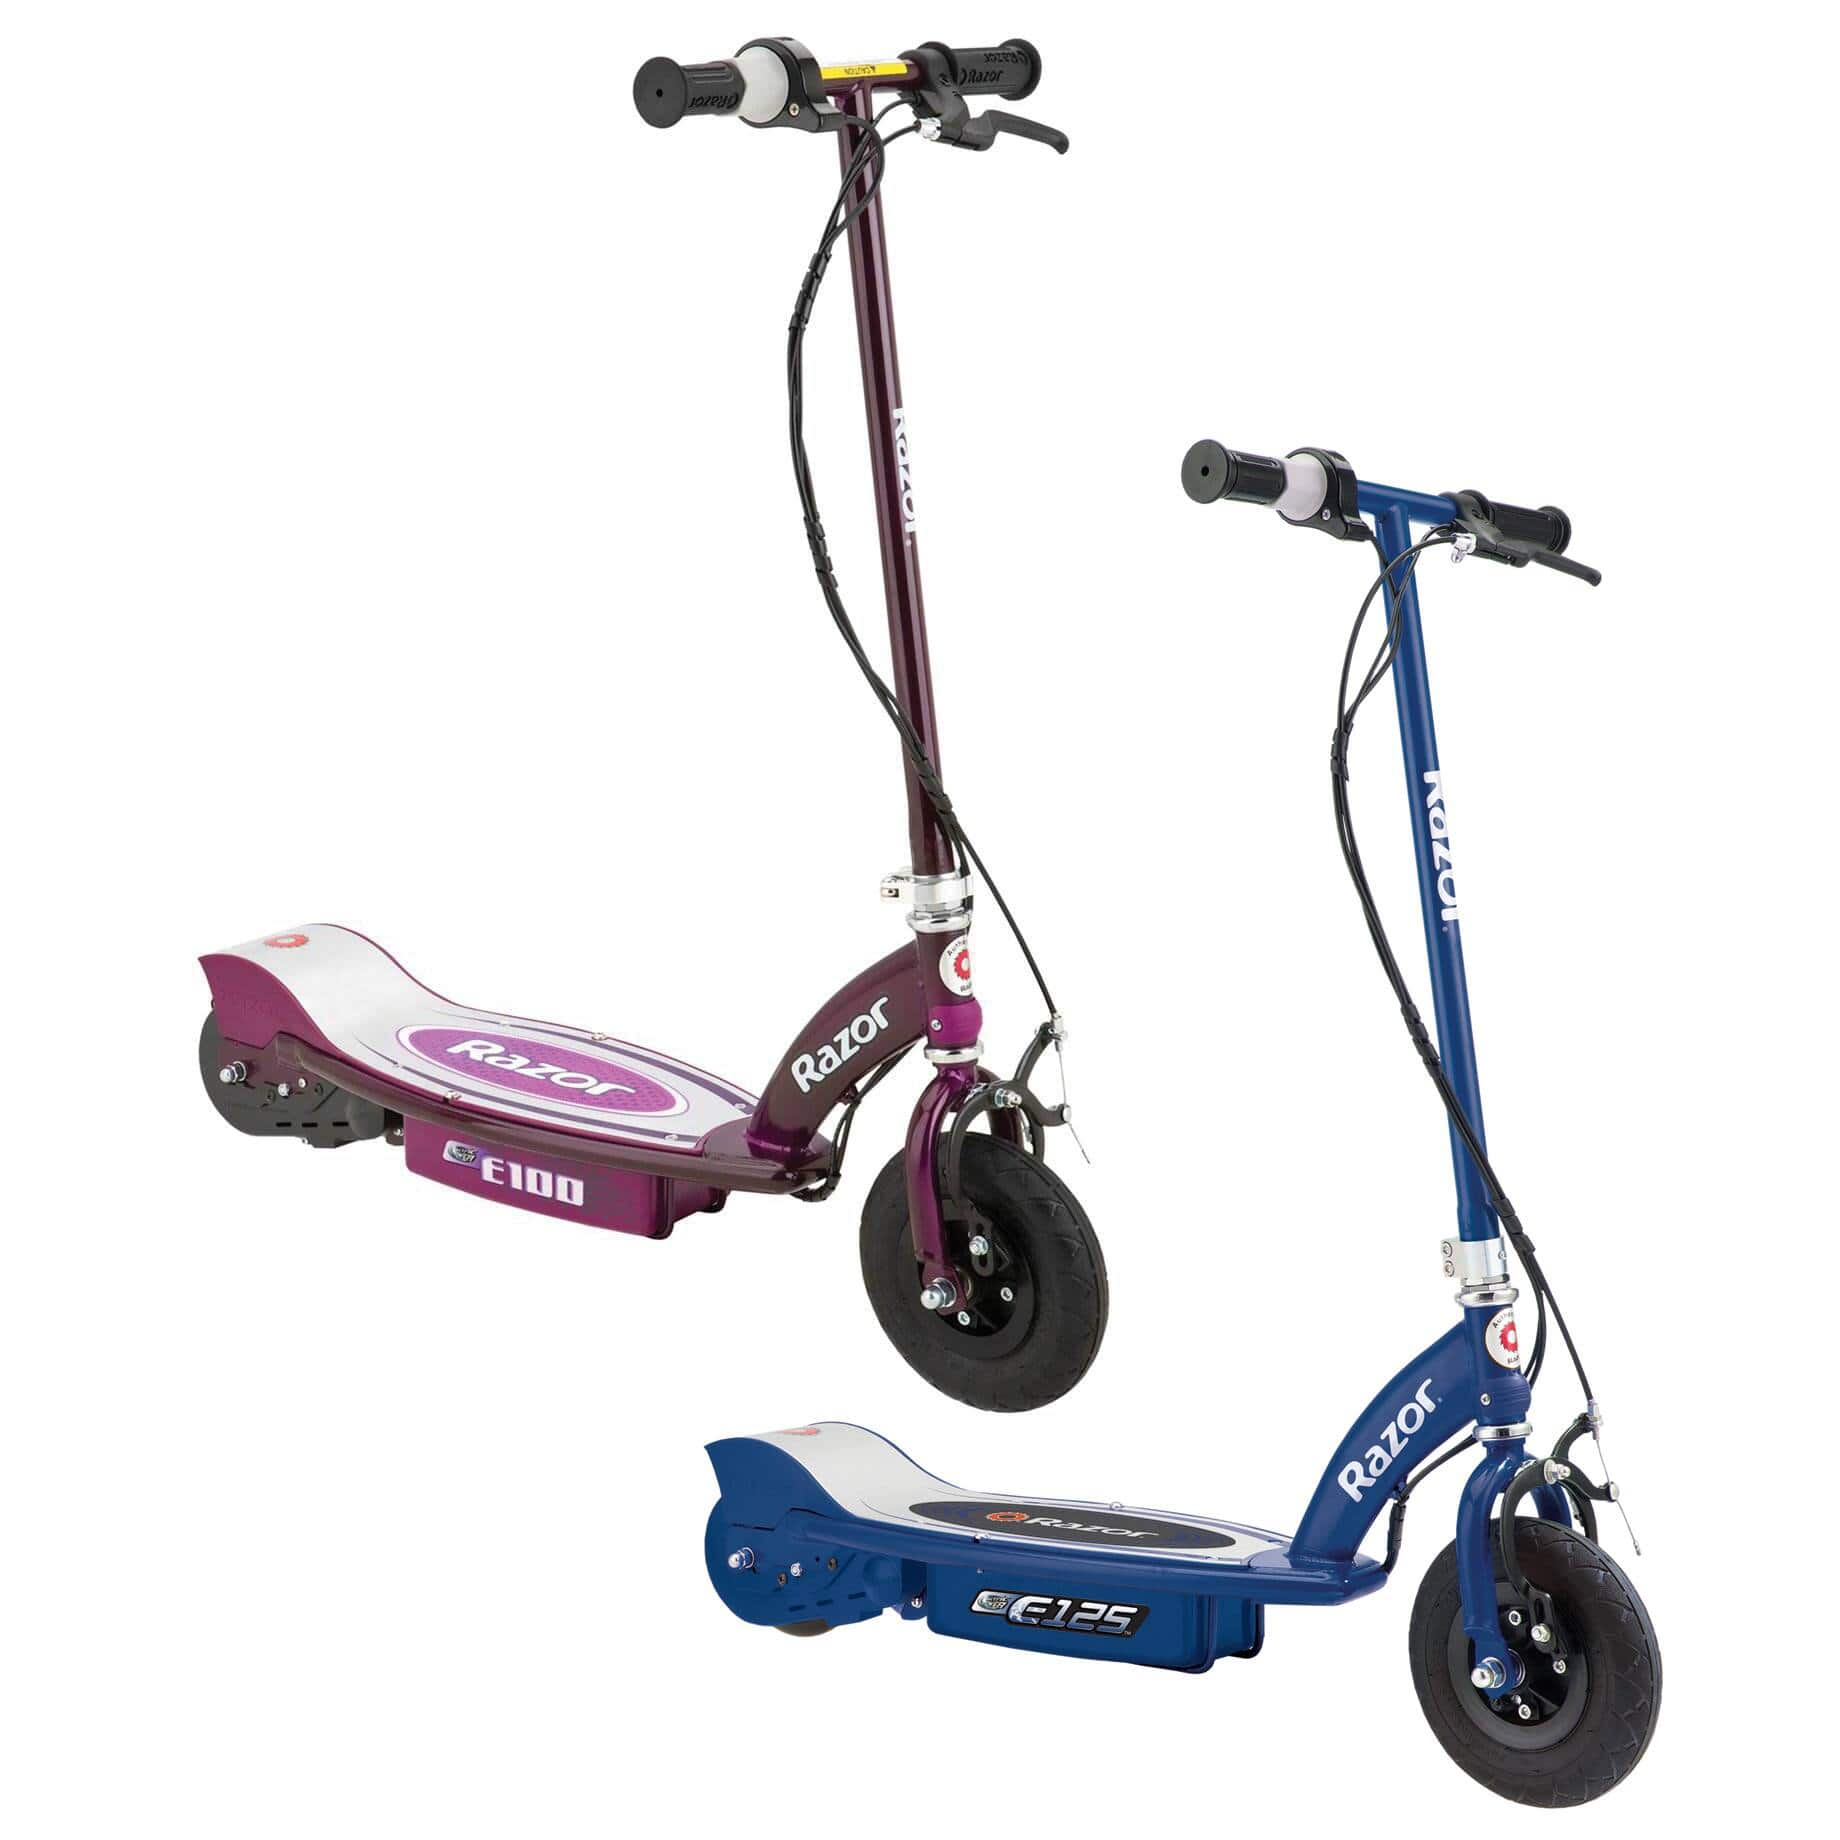 2-pack - Razor E100 & E125 Kids 24V Electric Battery Powered Toy Scooters, Blue & Purple $249.99 + FS